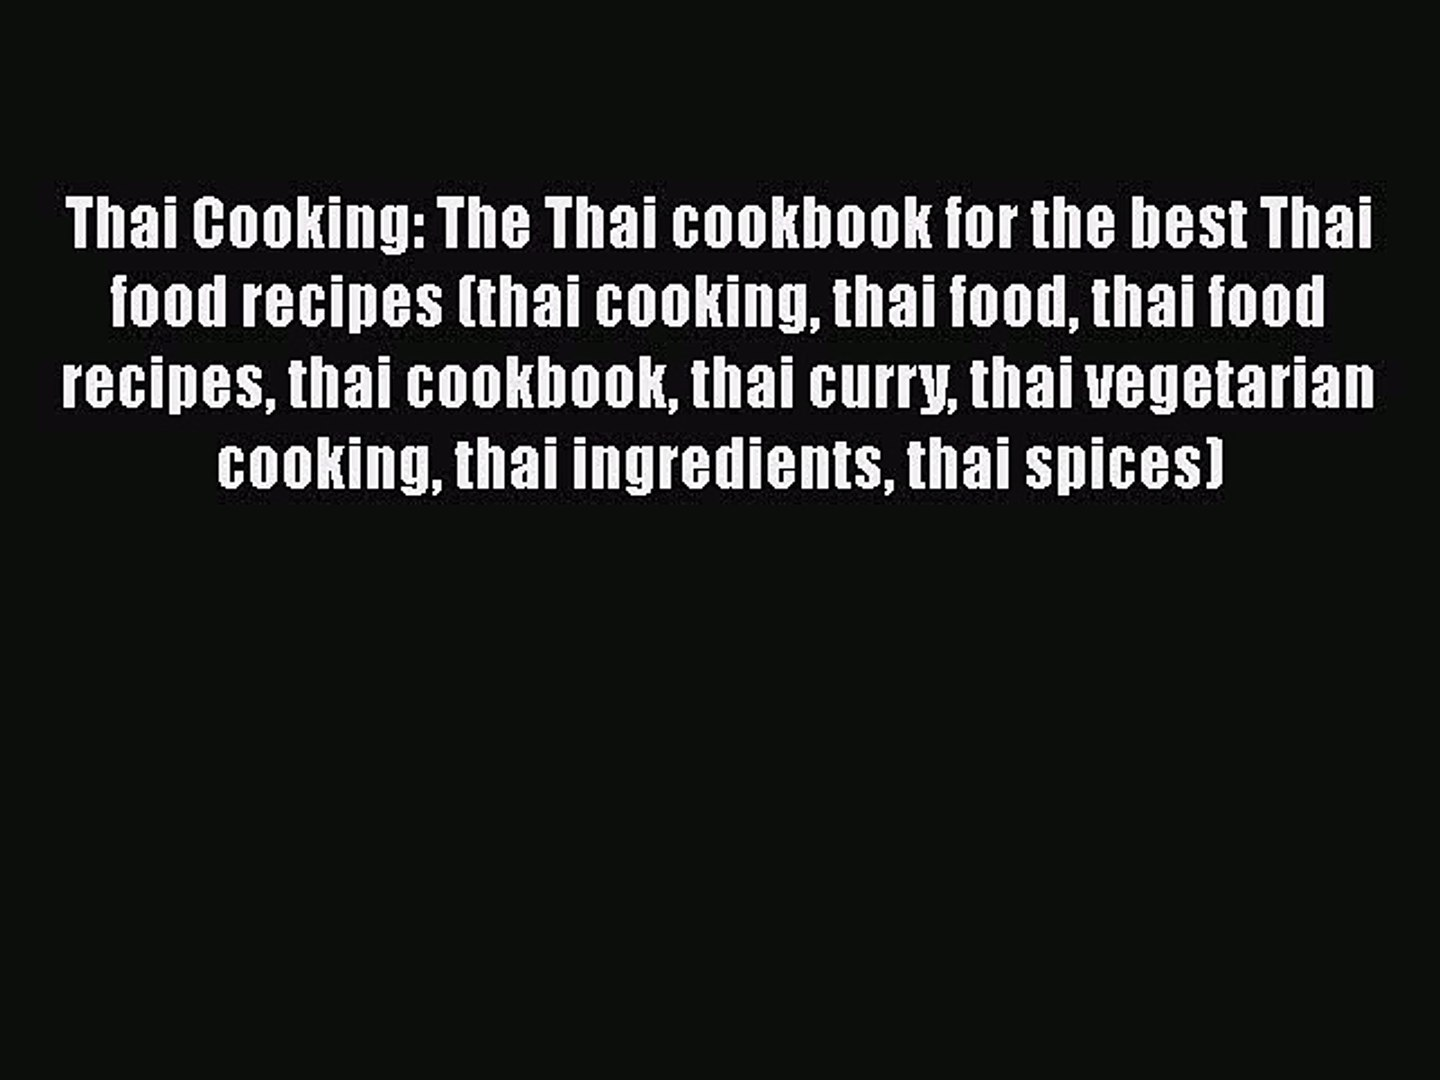 PDF Thai Cooking: The Thai cookbook for the best Thai food recipes (thai cooking thai food